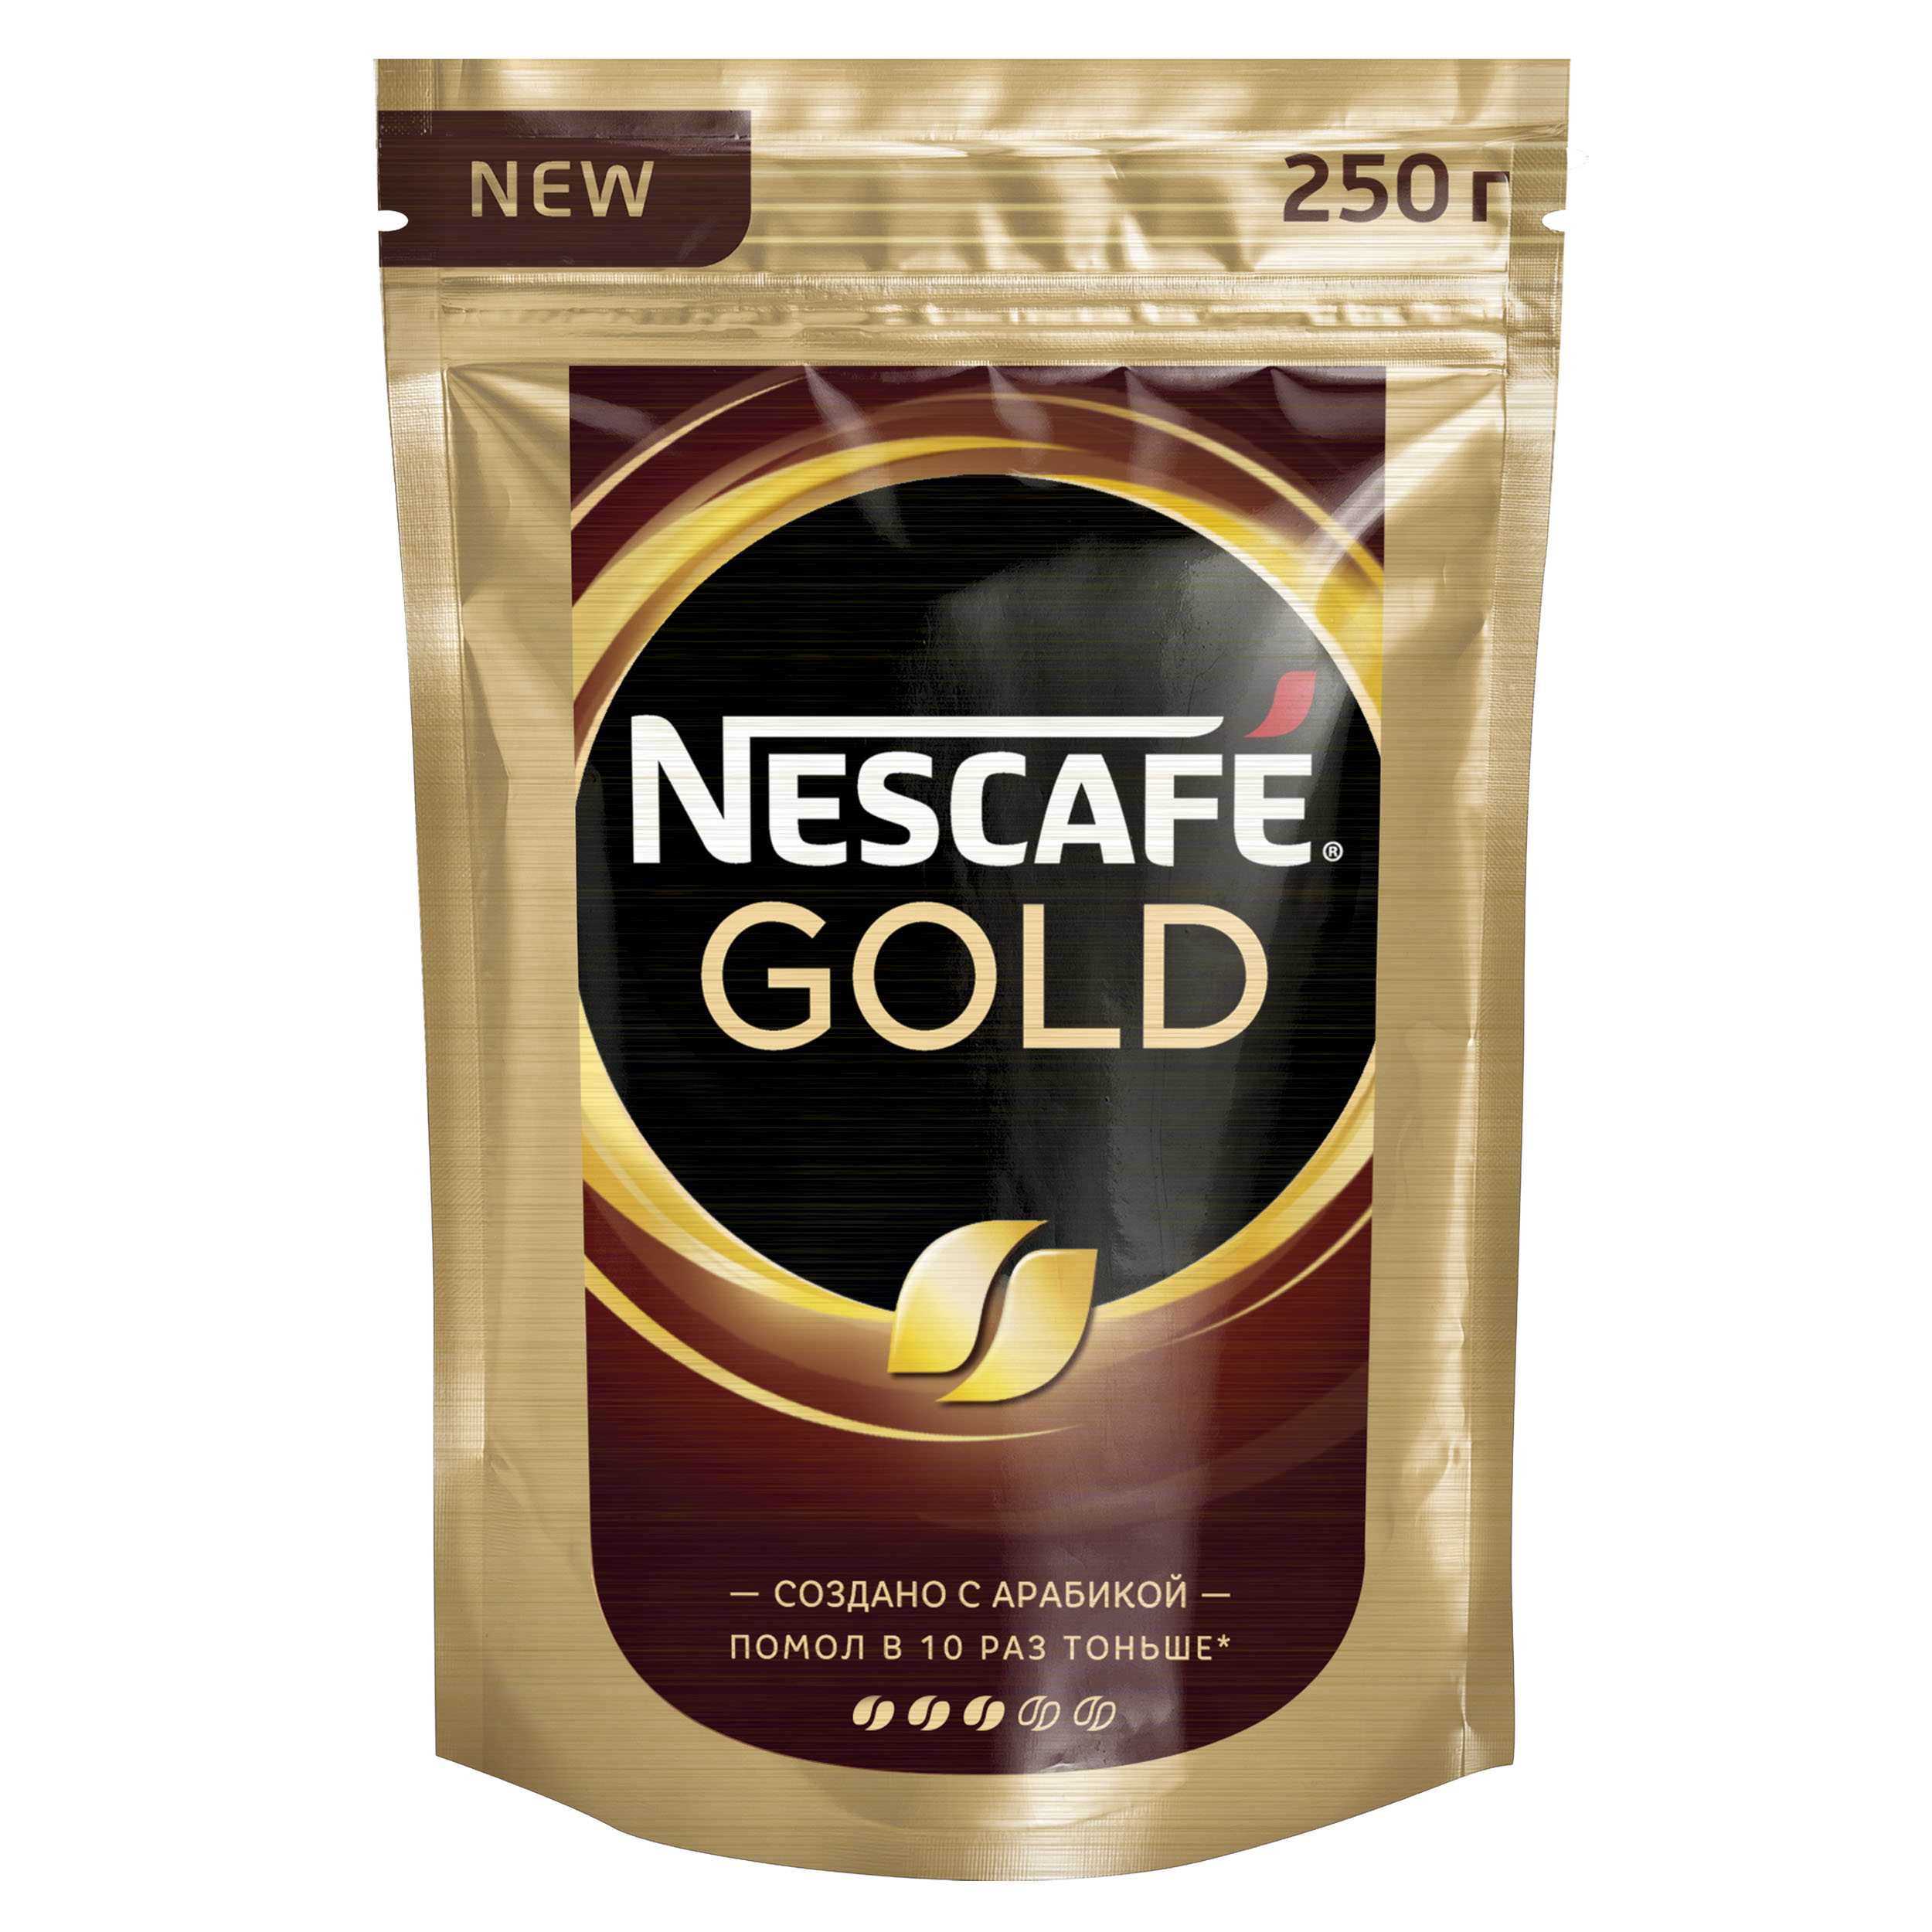 Кофе растворимый Nescafe gold 250 г фото